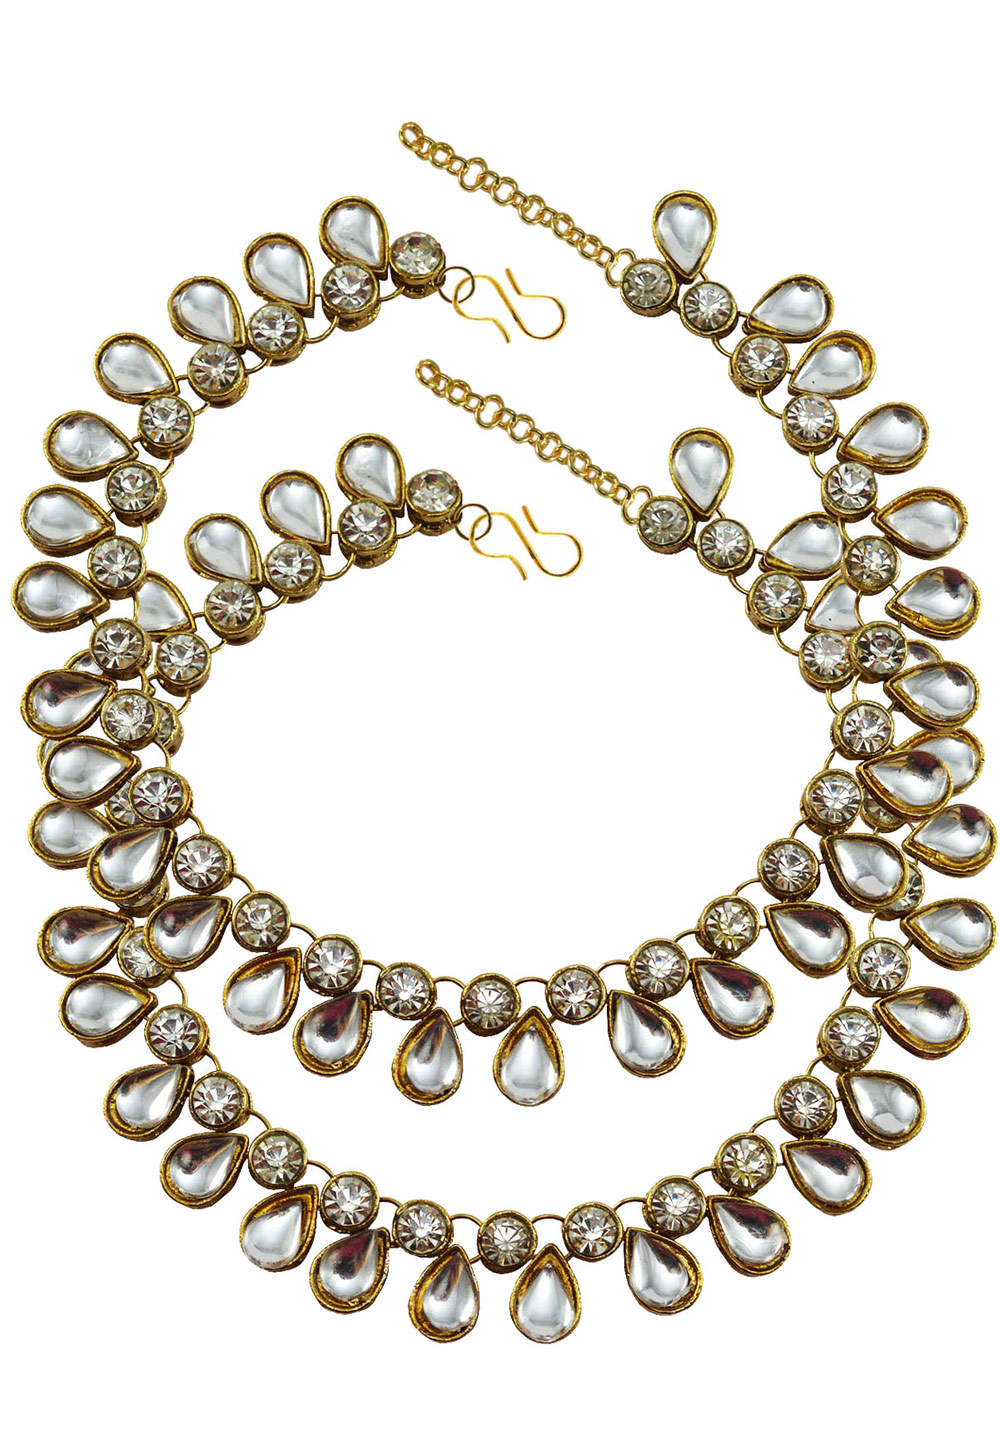 White Brass Gold Plated Anklets 171374